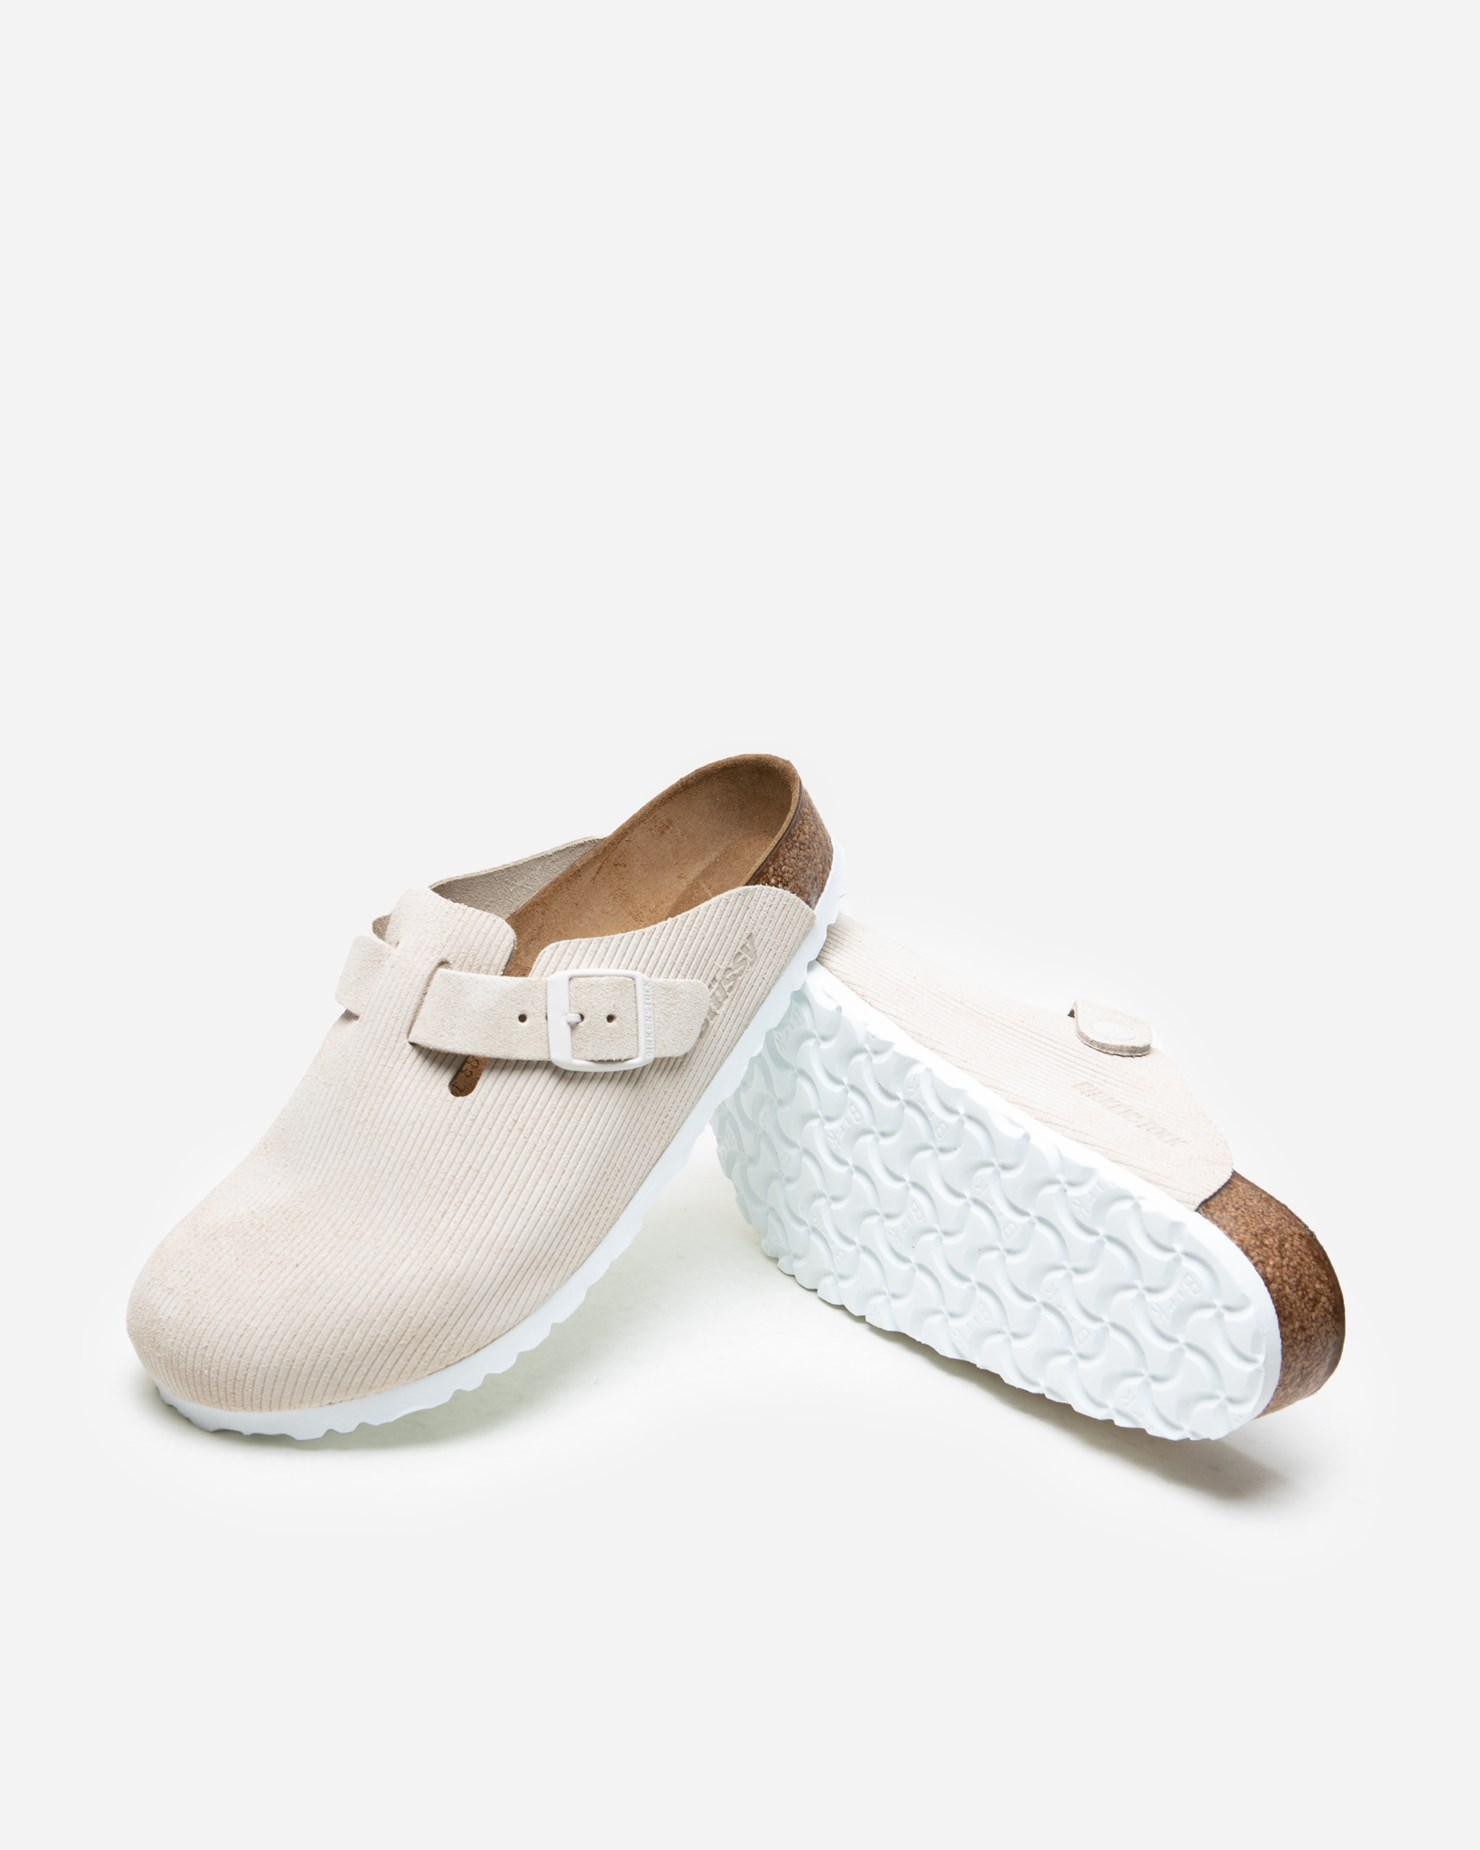 Stüssy x Birkenstock Boston: Official Images & Where to Buy